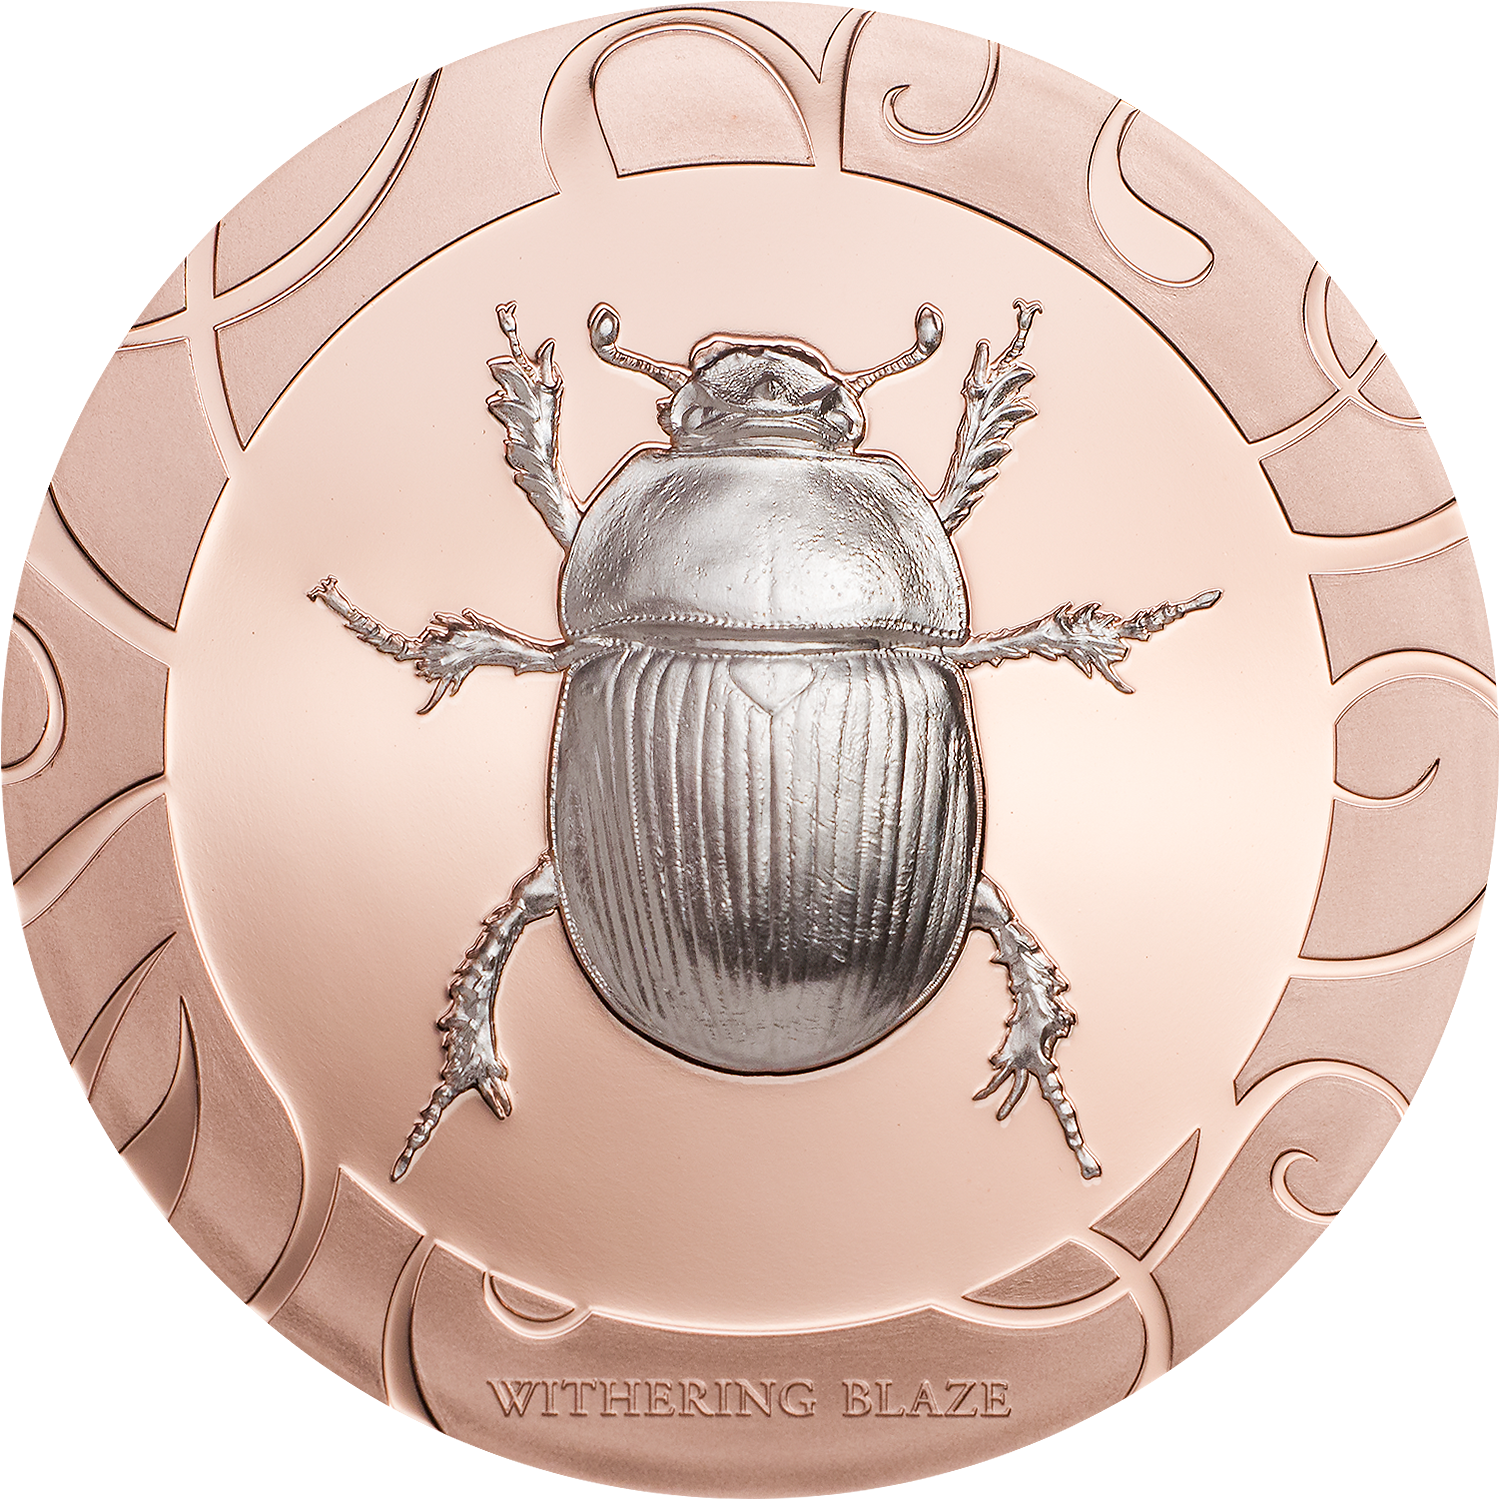 smartminting scarab selection coin withering blaze with high relief rose gold CIT and smartminting technology